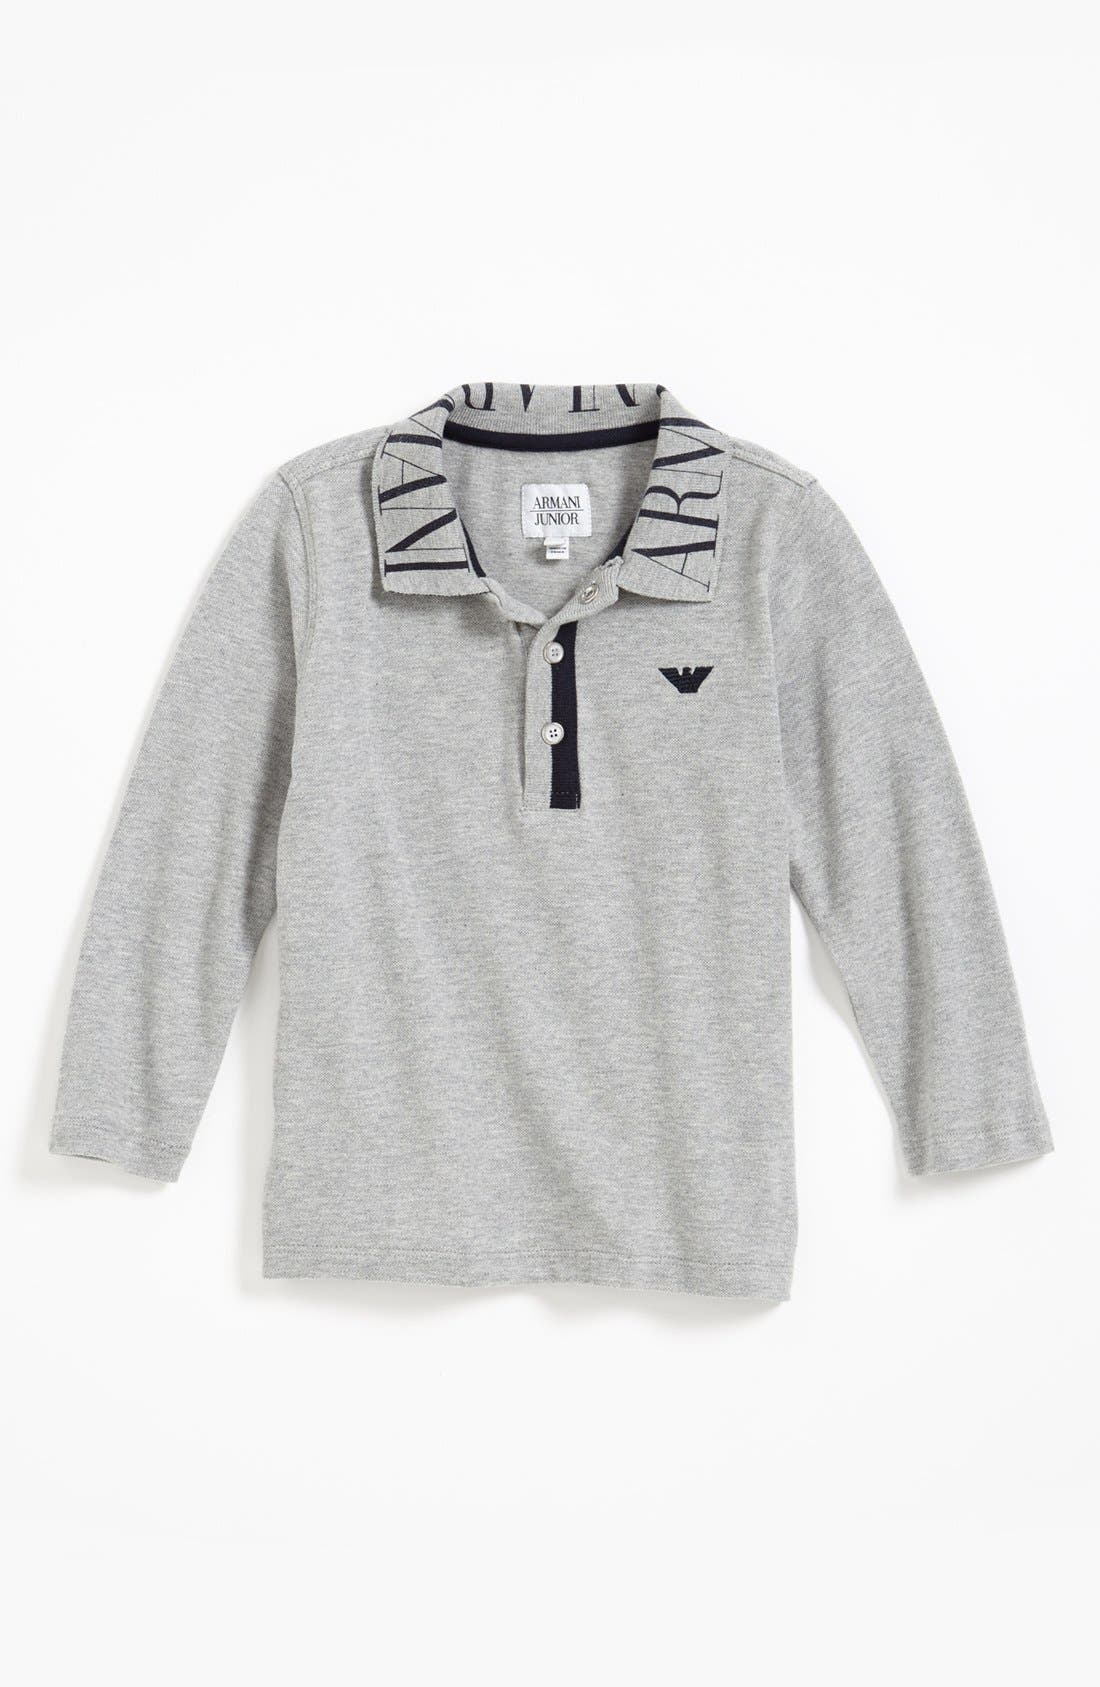 Main Image - Armani Junior Long Sleeve Polo (Toddler Boys, Little Boys & Big Boys)